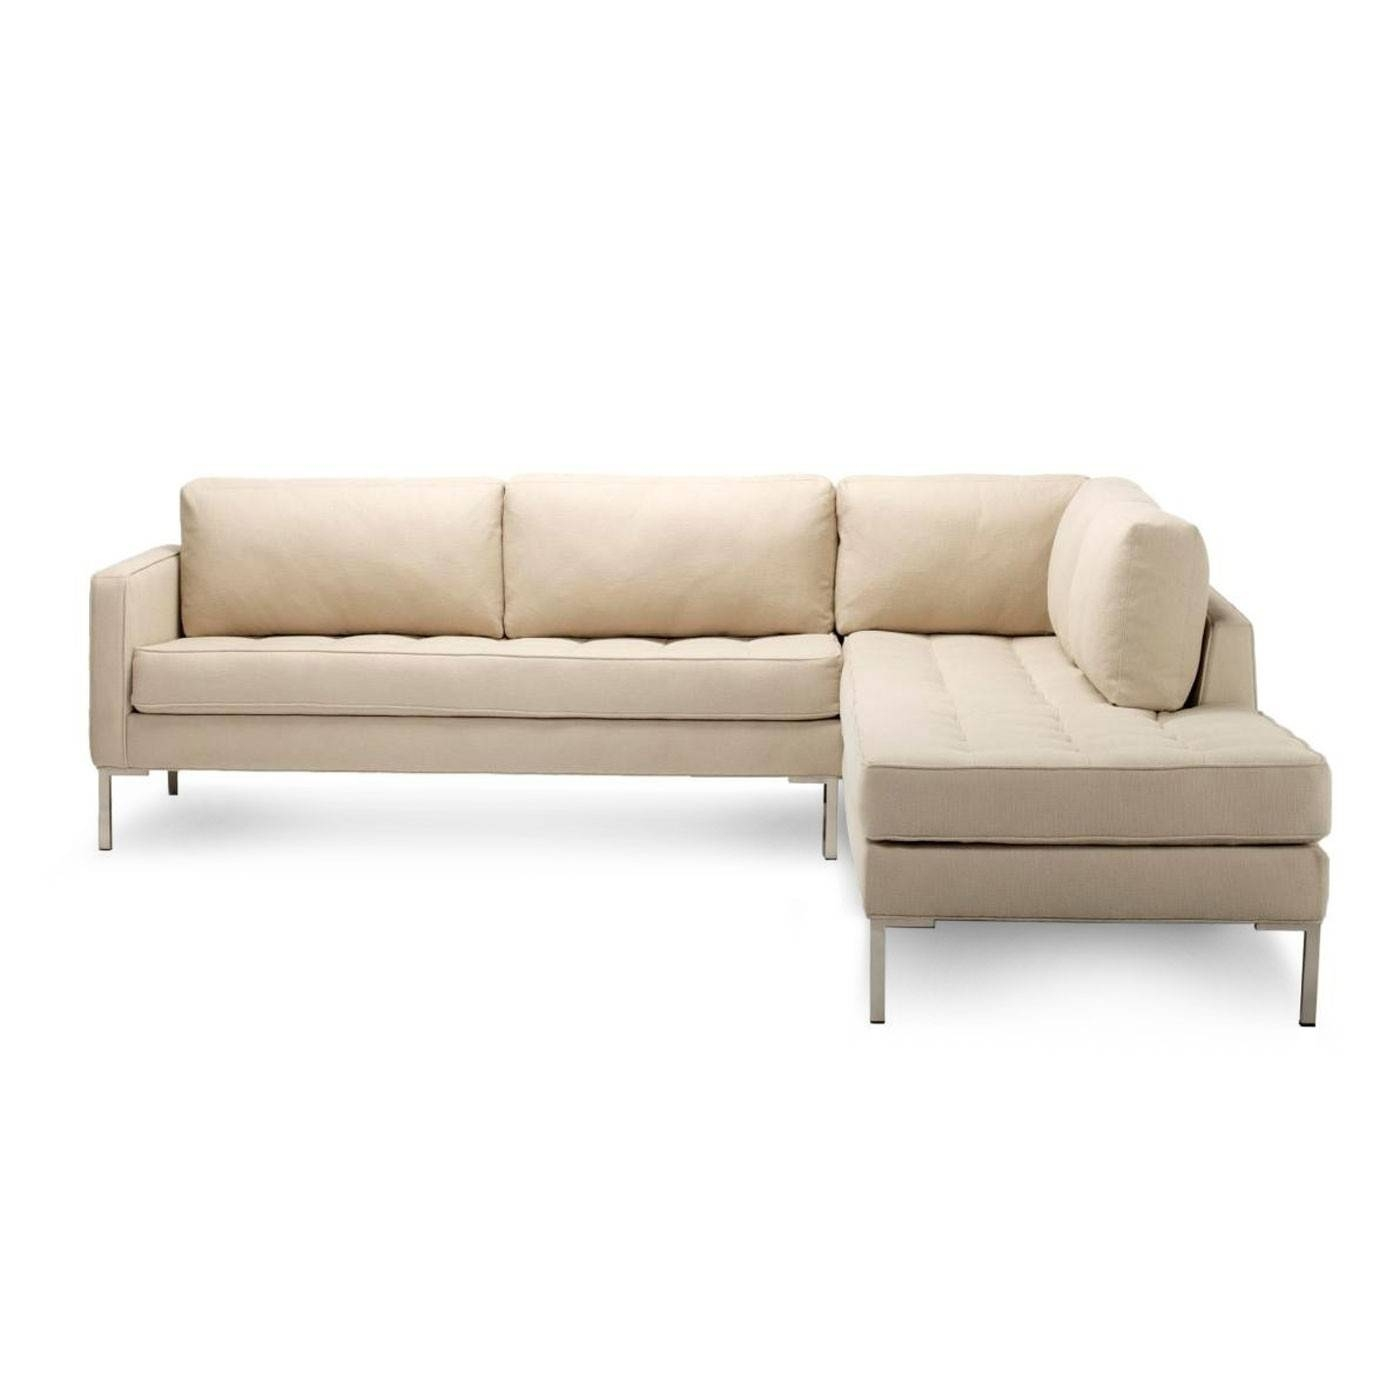 Furniture: Comfortable Modern Sofa Design With Cozy Armless Settee Intended For Armless Sectional Sofas (Photo 11 of 30)